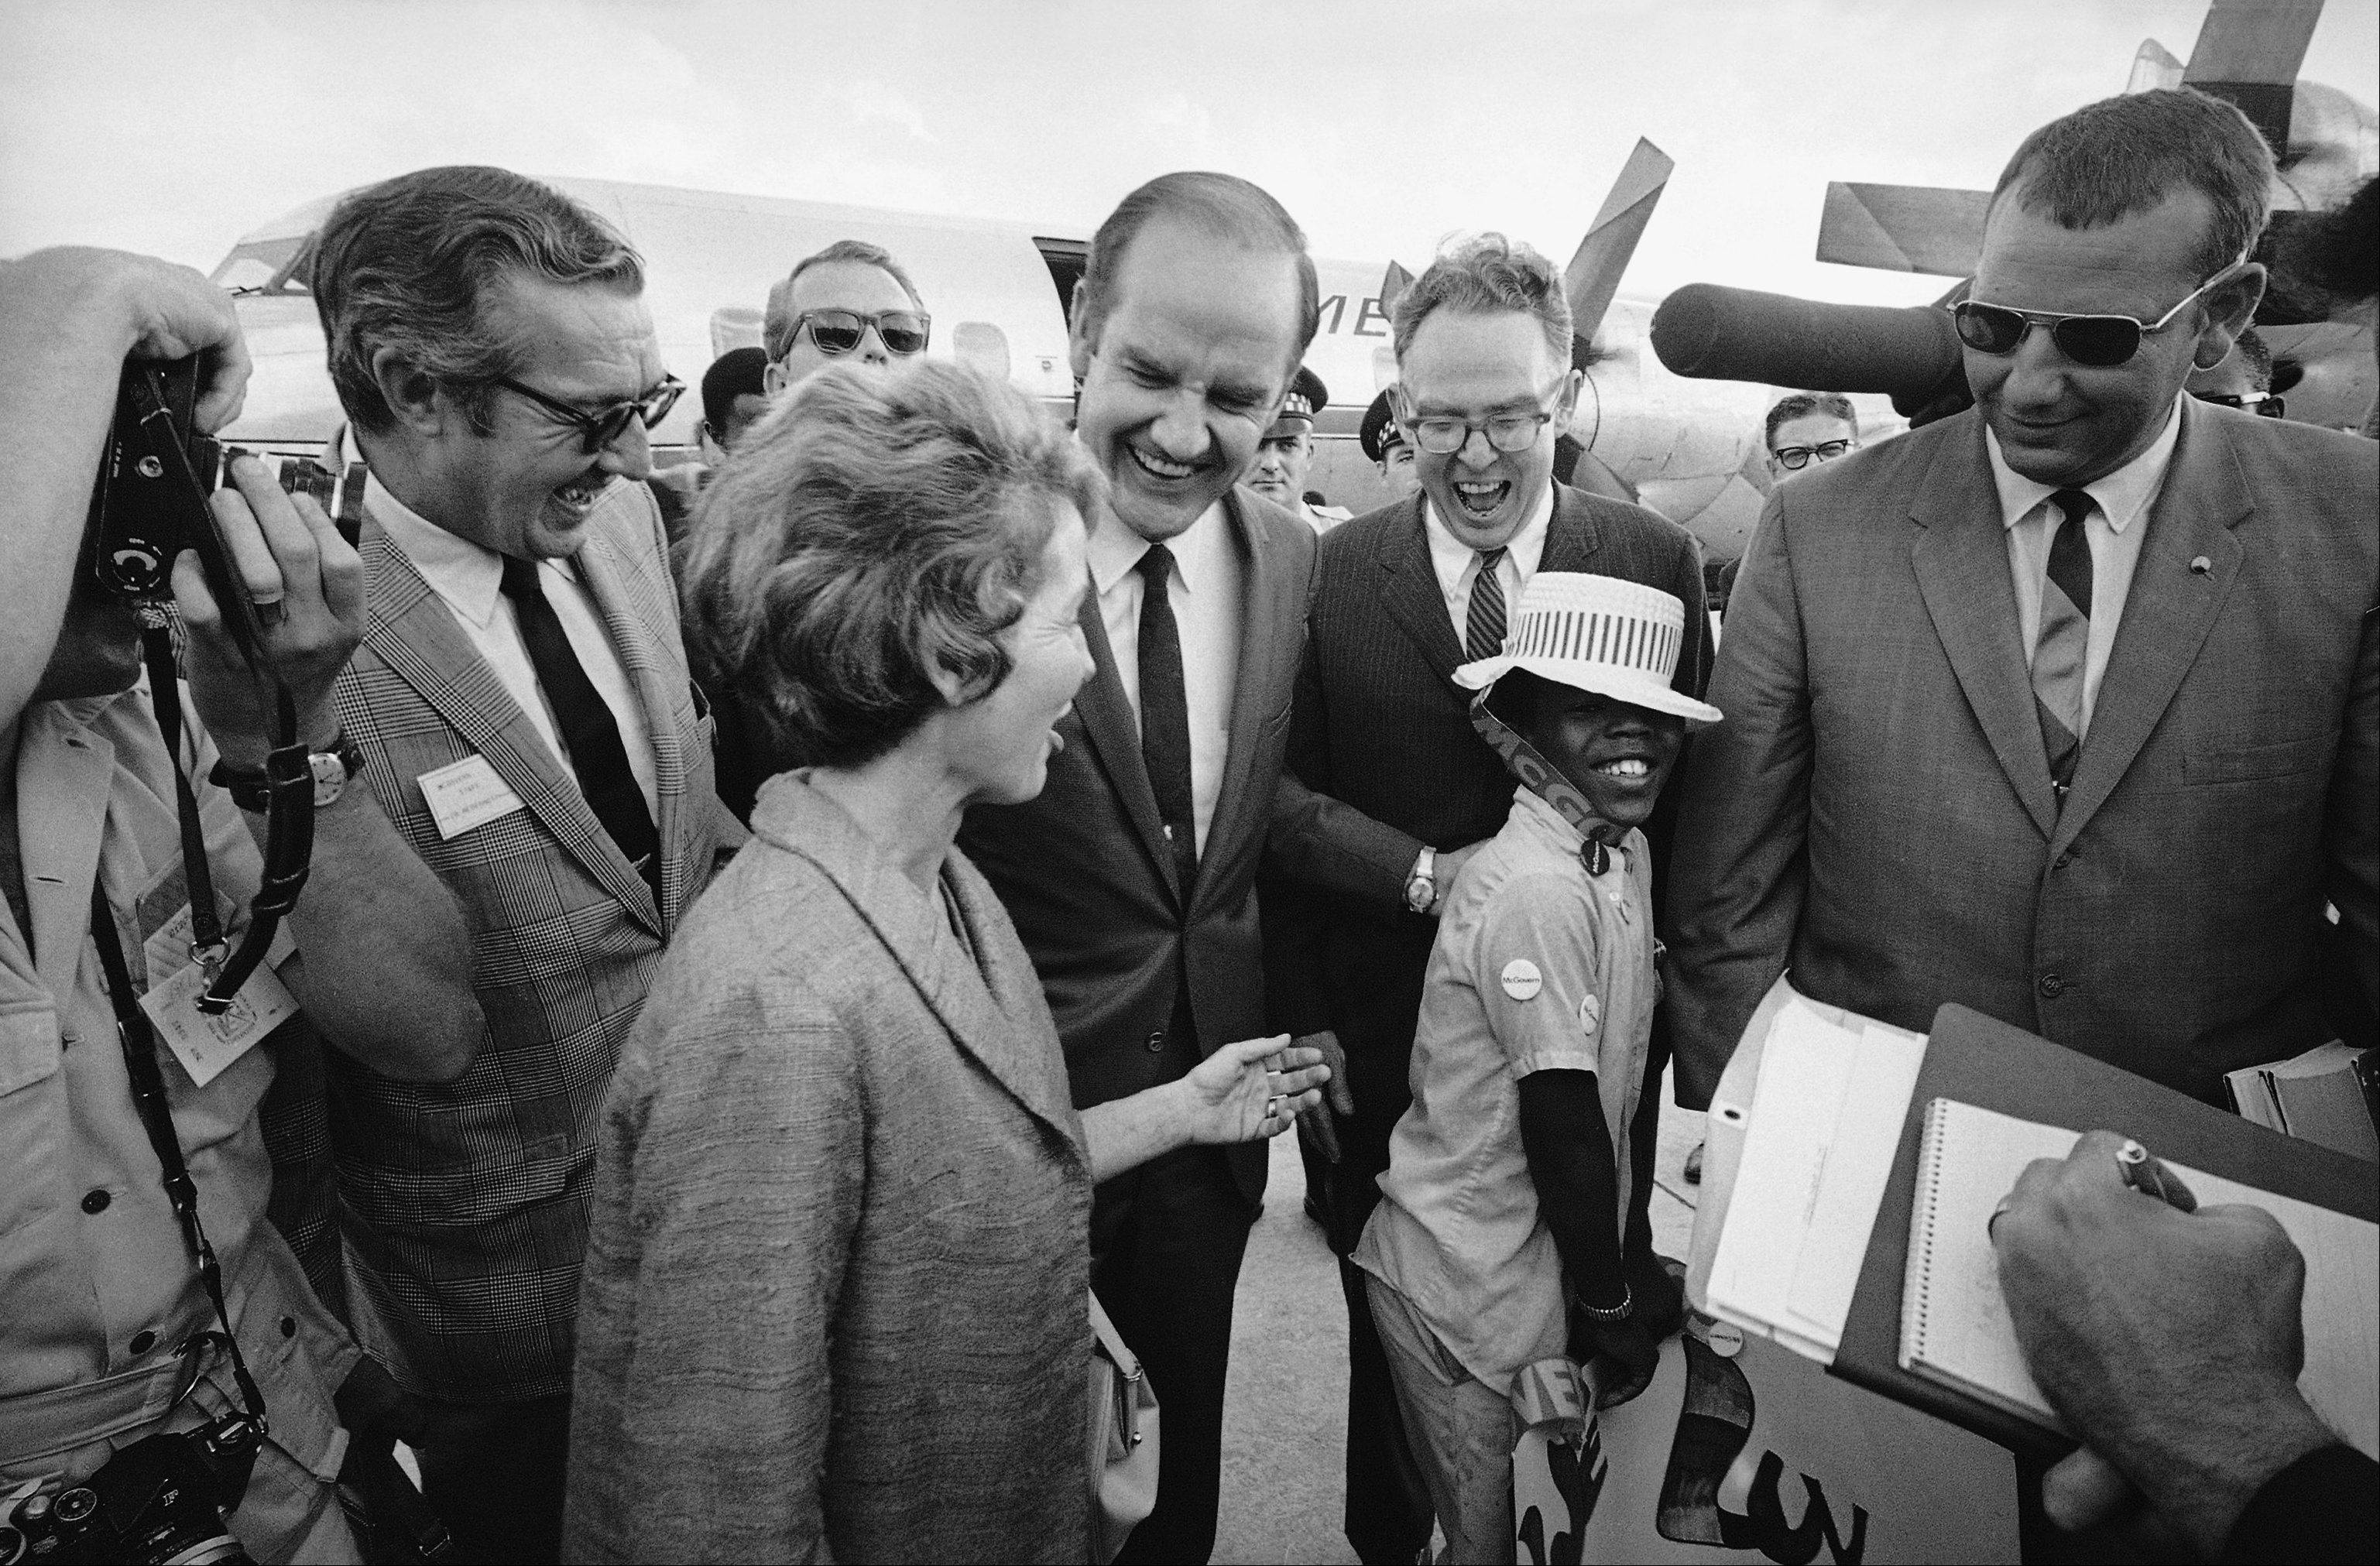 Sen. and Mrs. George S. McGovern of South Dakota, and an aid enjoy a good laugh after remark by Duane Calhoun, II, of Chicago who greeted them on arrival at Midway Airport in Chicago, Friday, August 23, 1968.